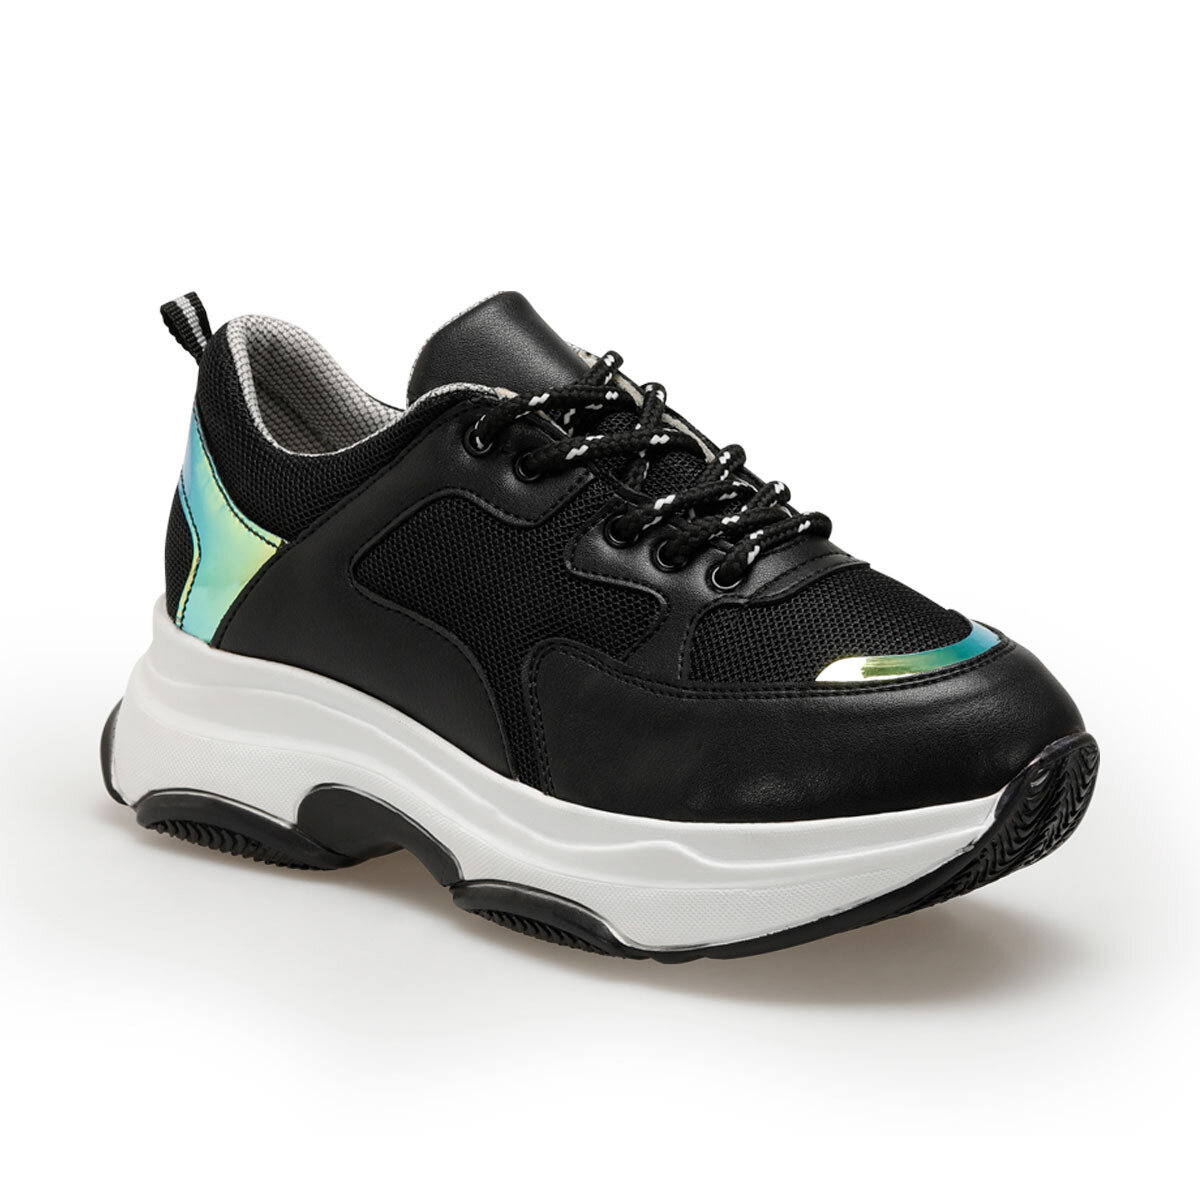 FLO 19SF-1502-19K Black Women 'S Sneaker Shoes BUTIGO